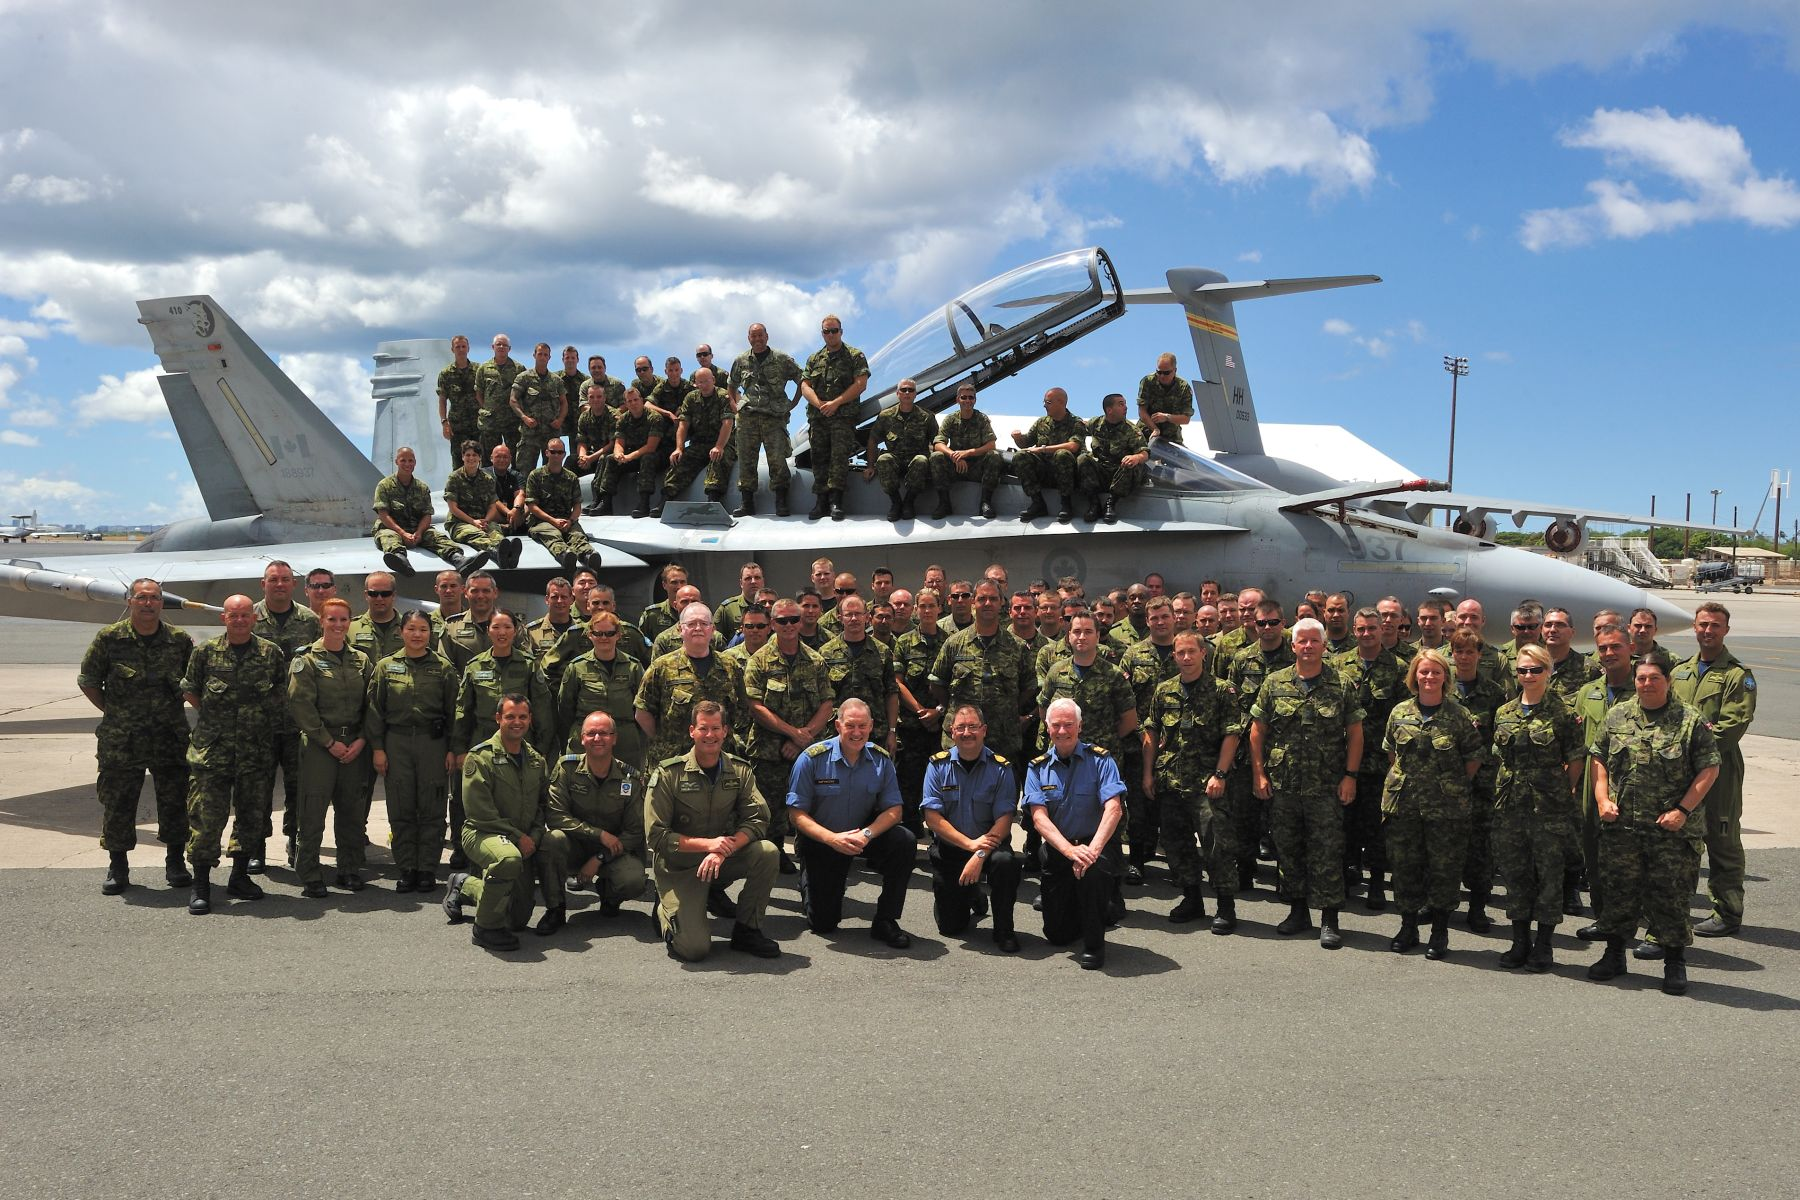 His Excellency and the Chief of the Defence Staff are pictured with the 425 Tactical Fighter Squadron.